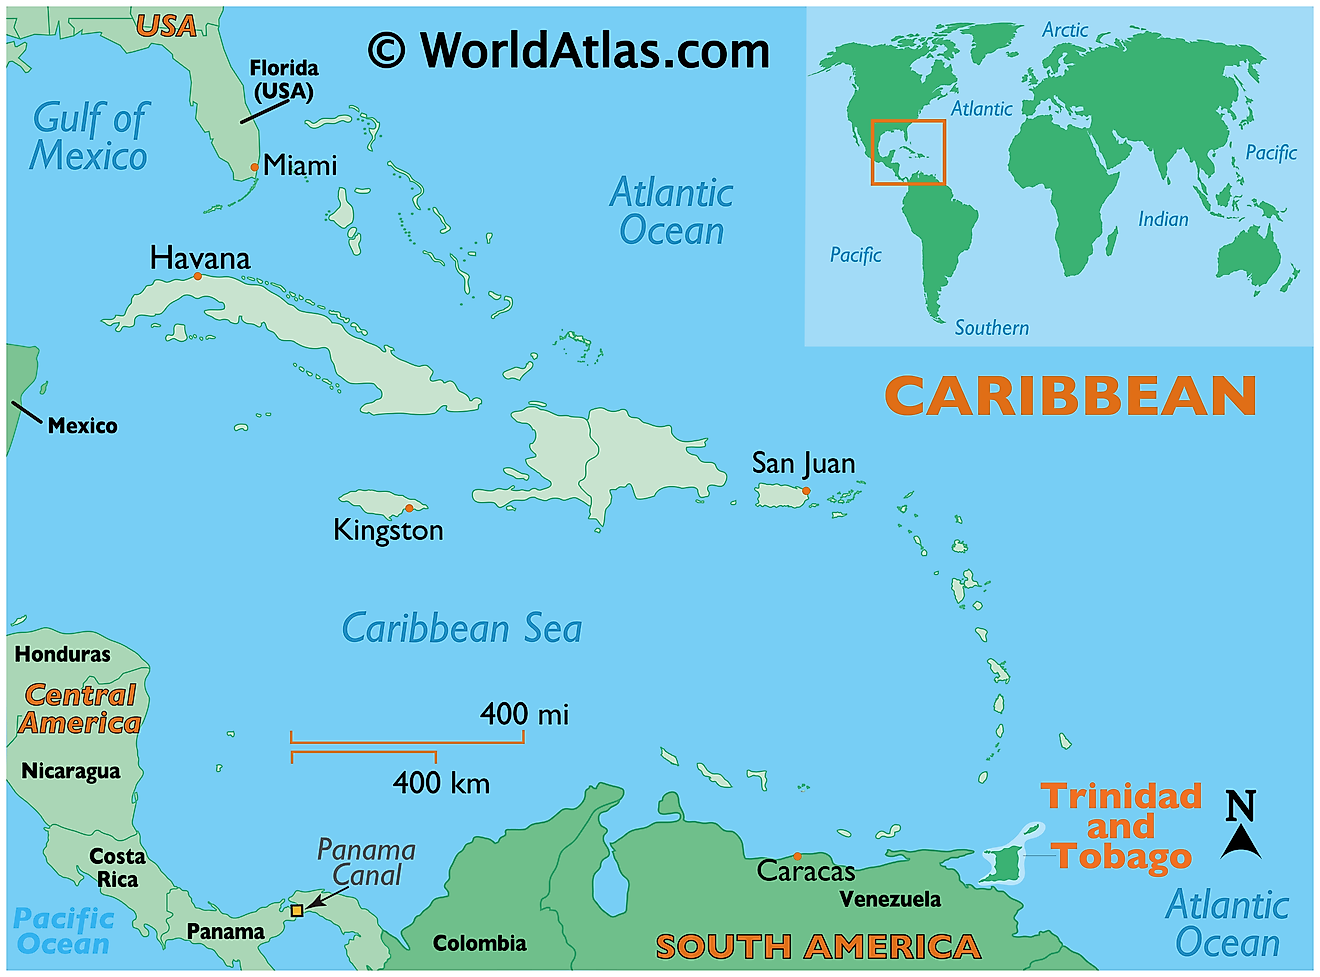 Map showing location of Trinidad and Tobago in the world.